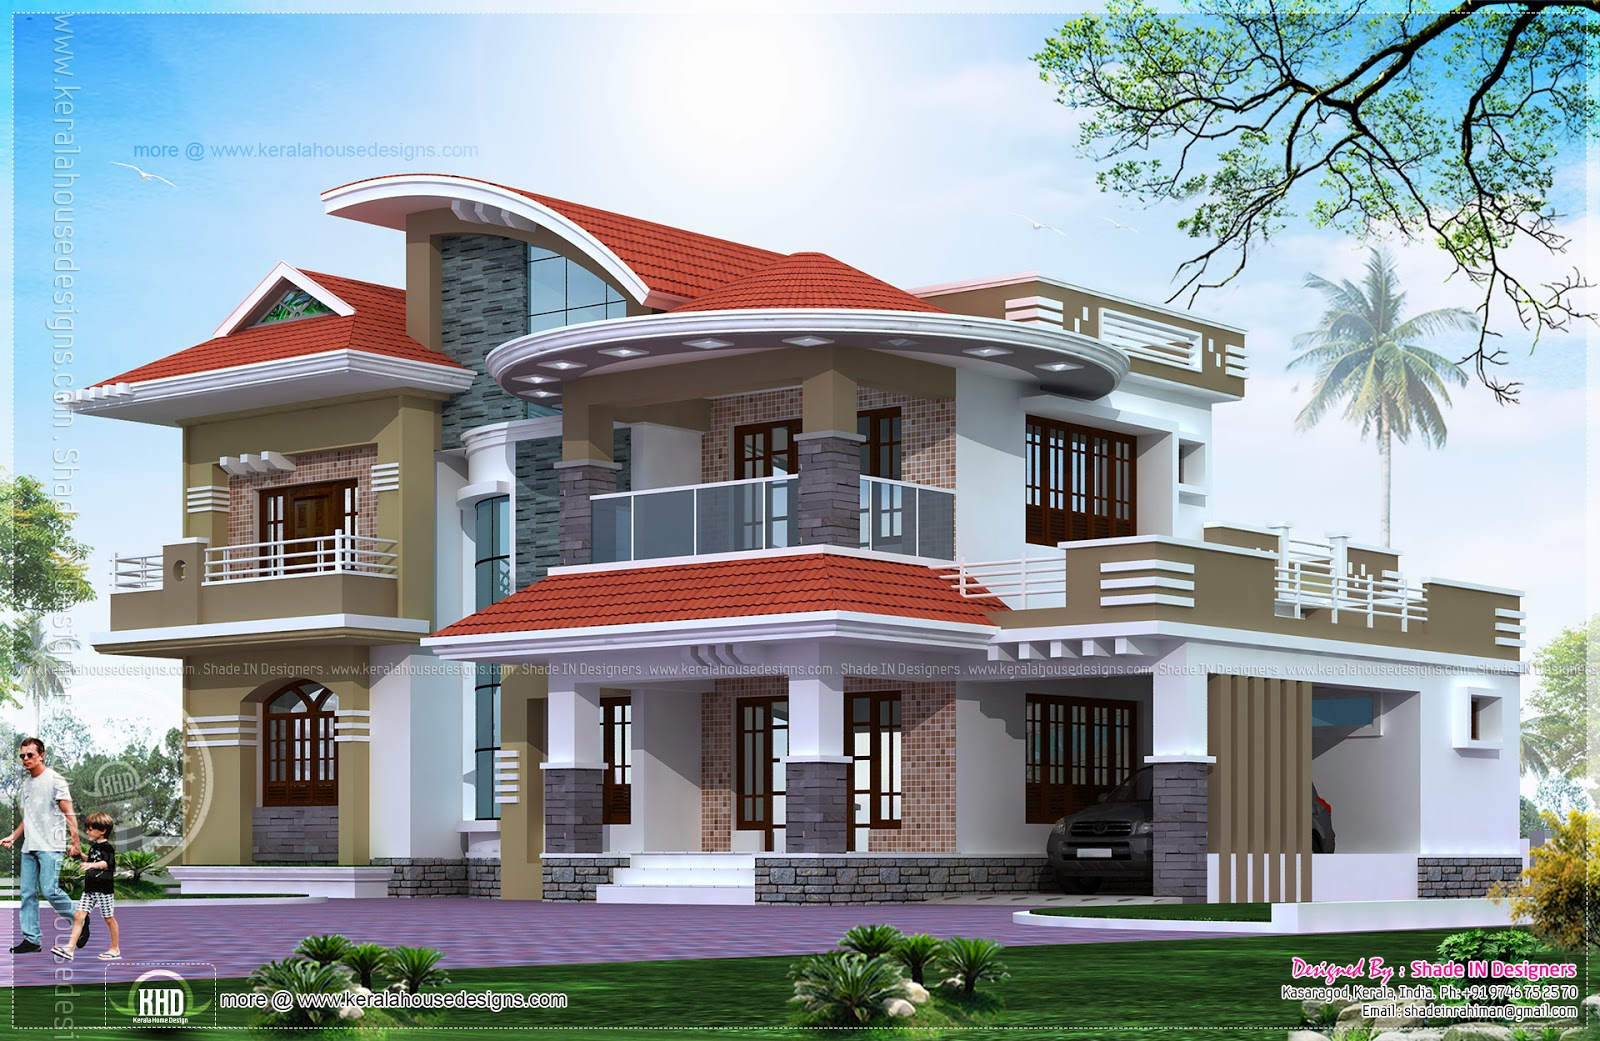 5 bedroom luxury house in kasaragod kerala home design for 5 bedroom house